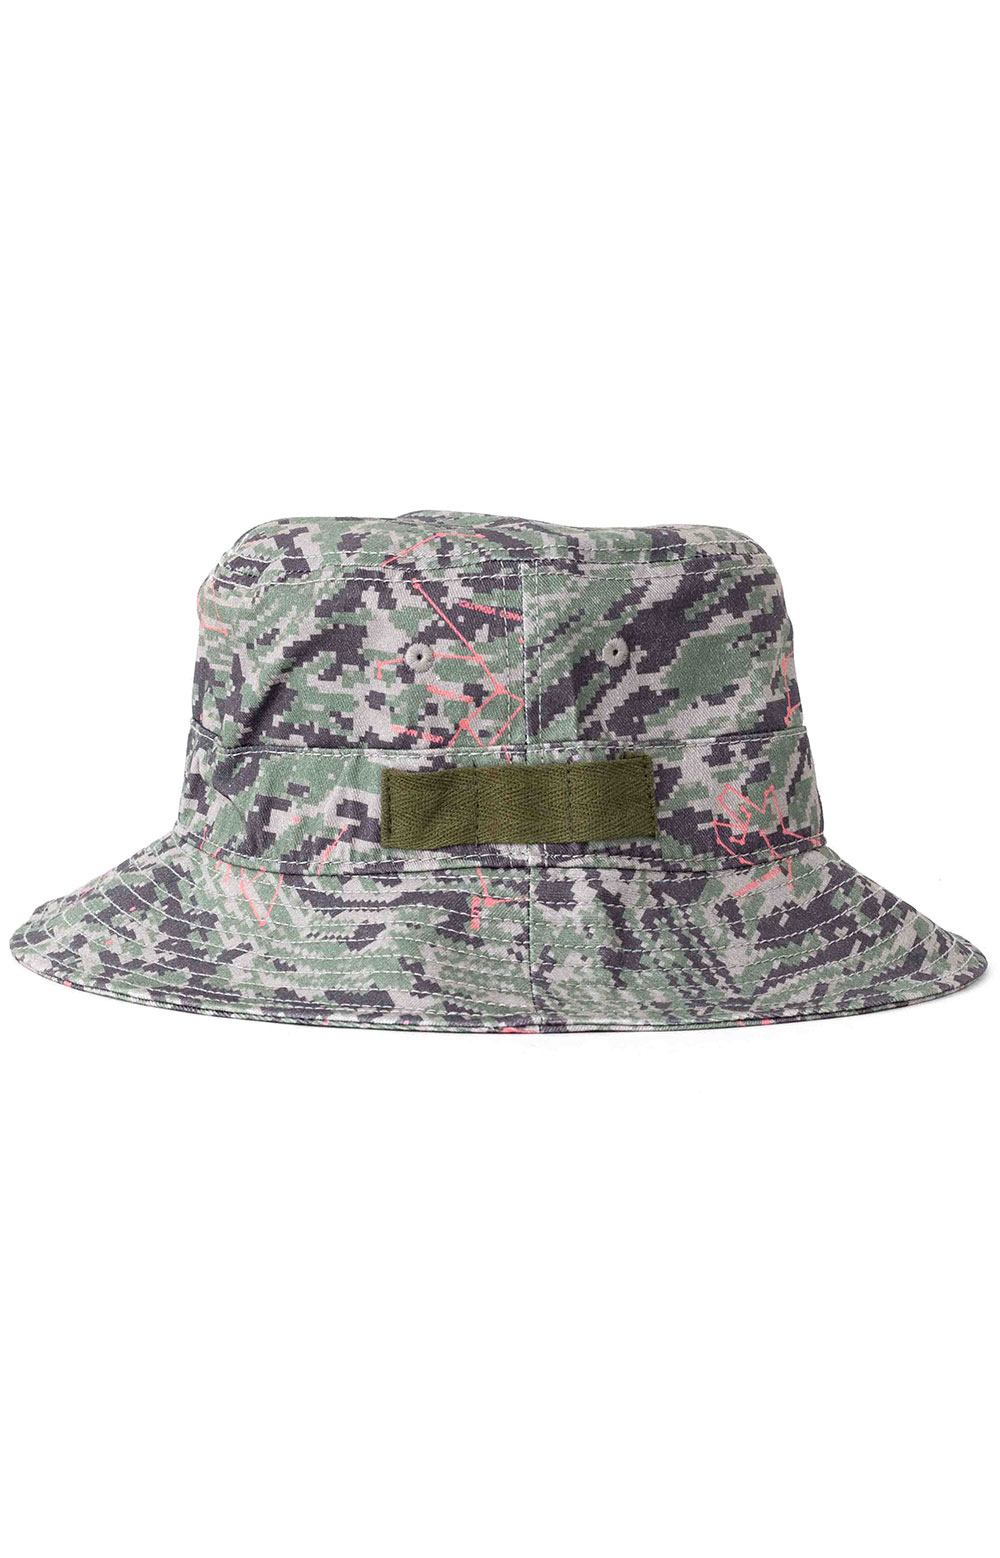 BB Moonrock Bucket Hat - Goat 3